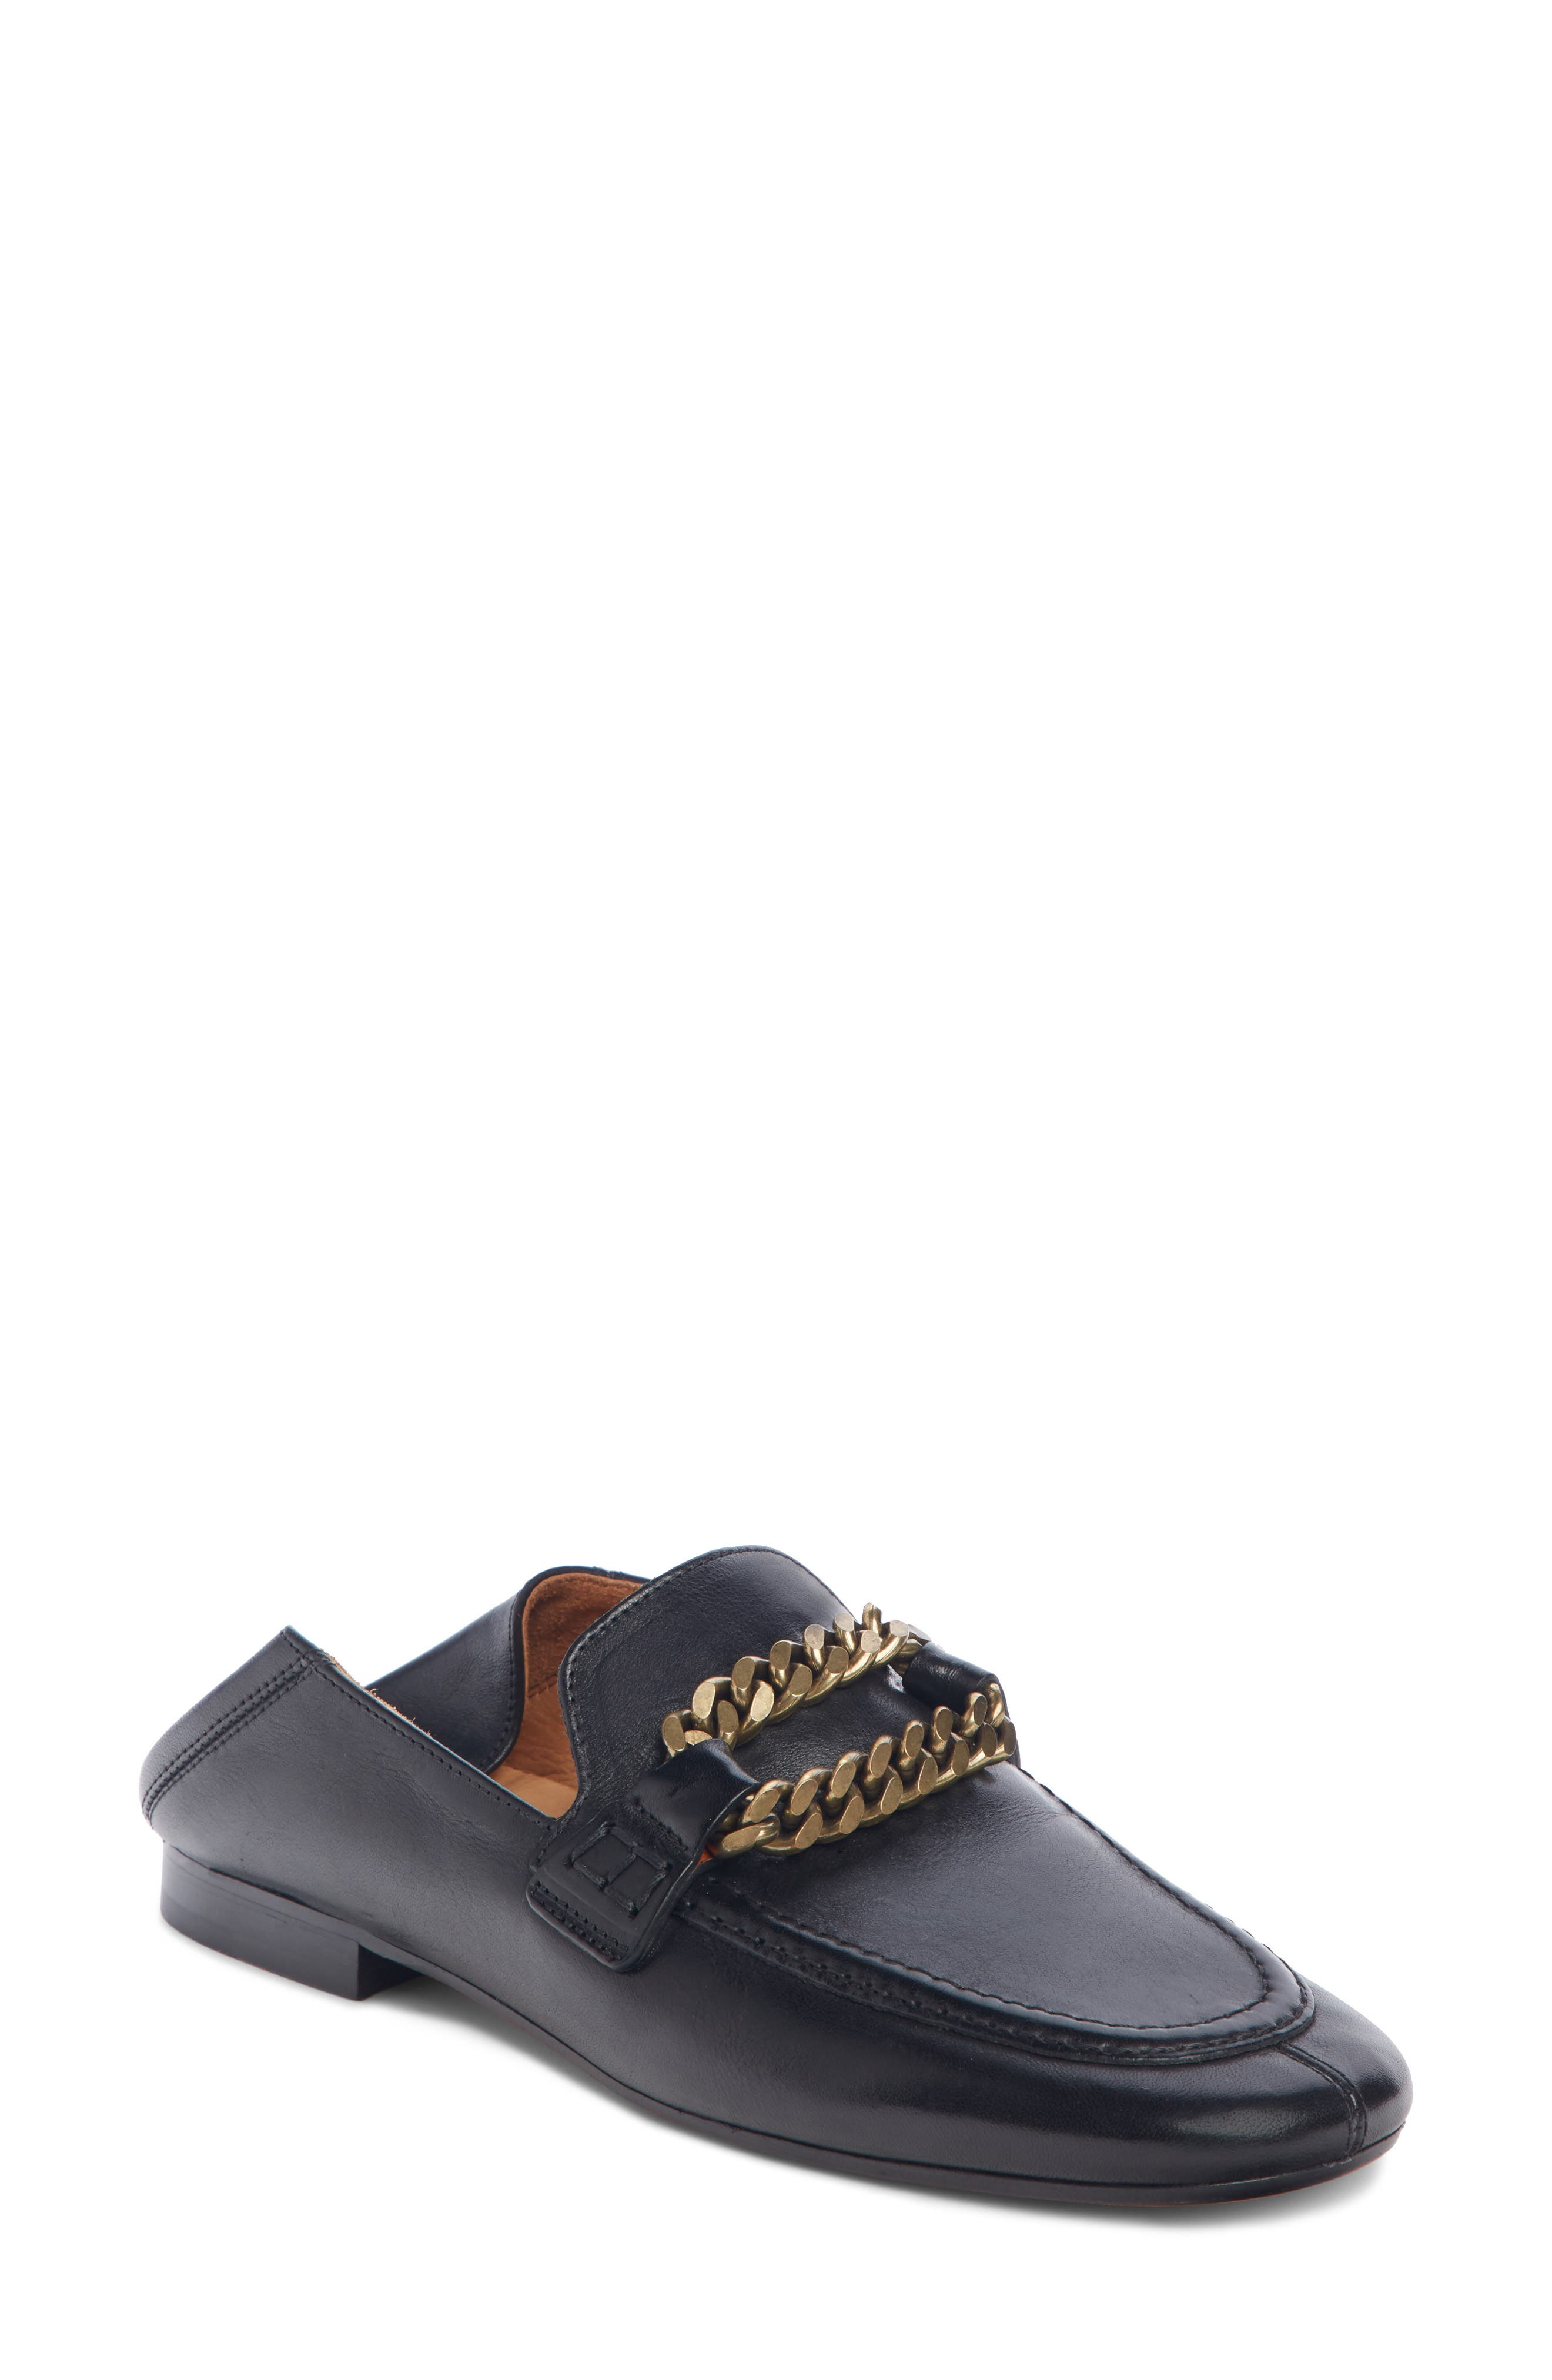 ISABEL MARANT Firlee Chain Convertible Loafer, Main, color, BLACK